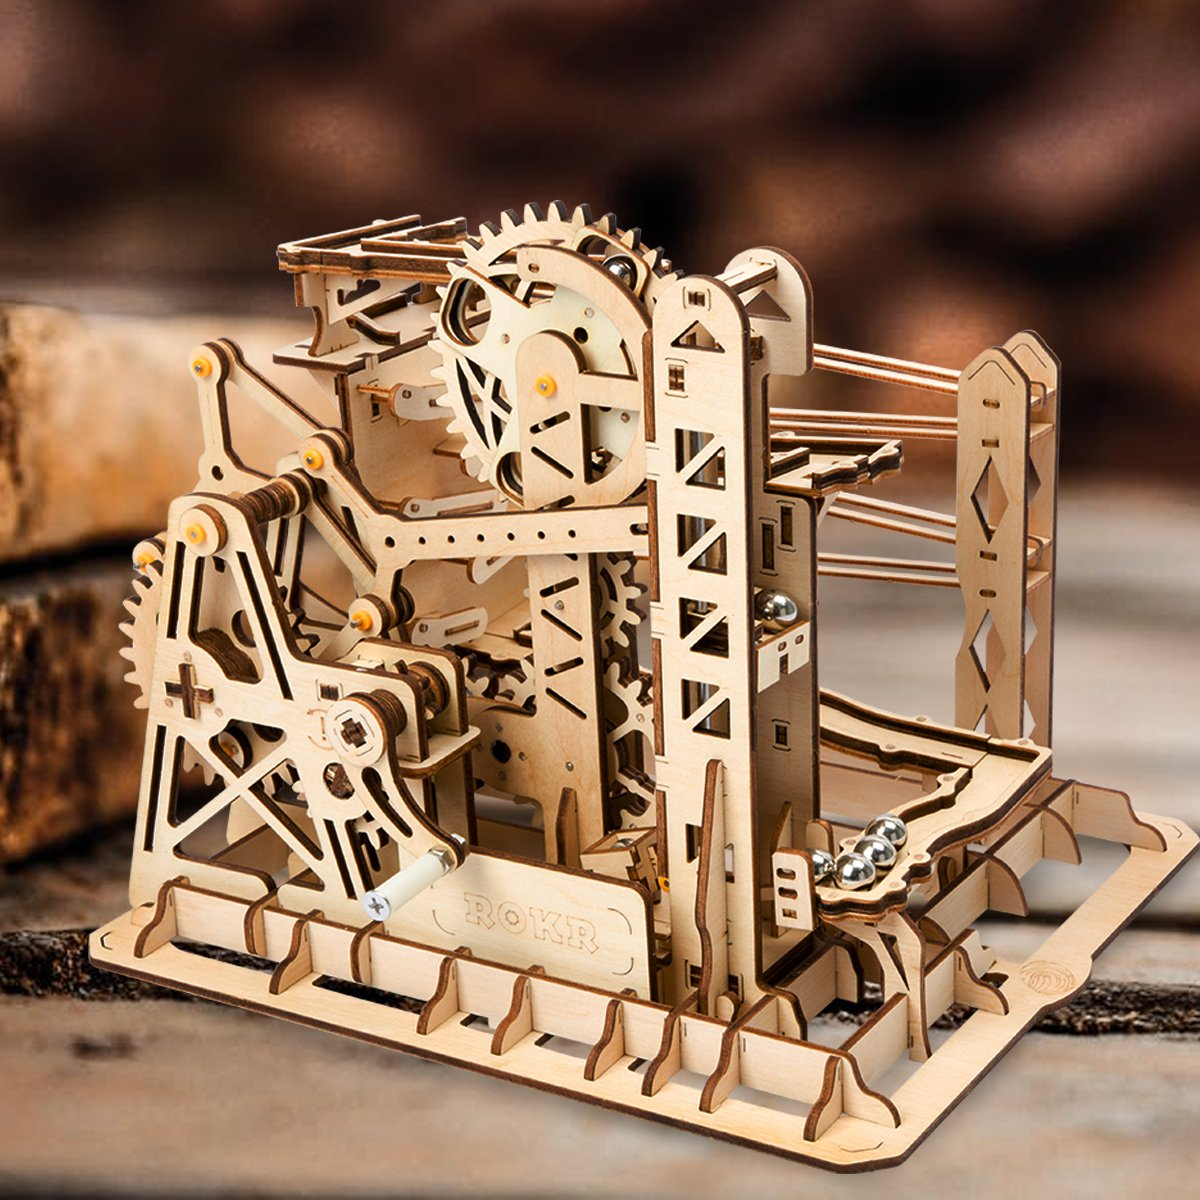 ROBOTIME 3D Puzzle Engineering Toys STEM Learning Kits Wooden Laser-Cut Model Kit Best Mechanical Gears Toy Gifts for Adults & Teens by ROBOTIME (Image #3)